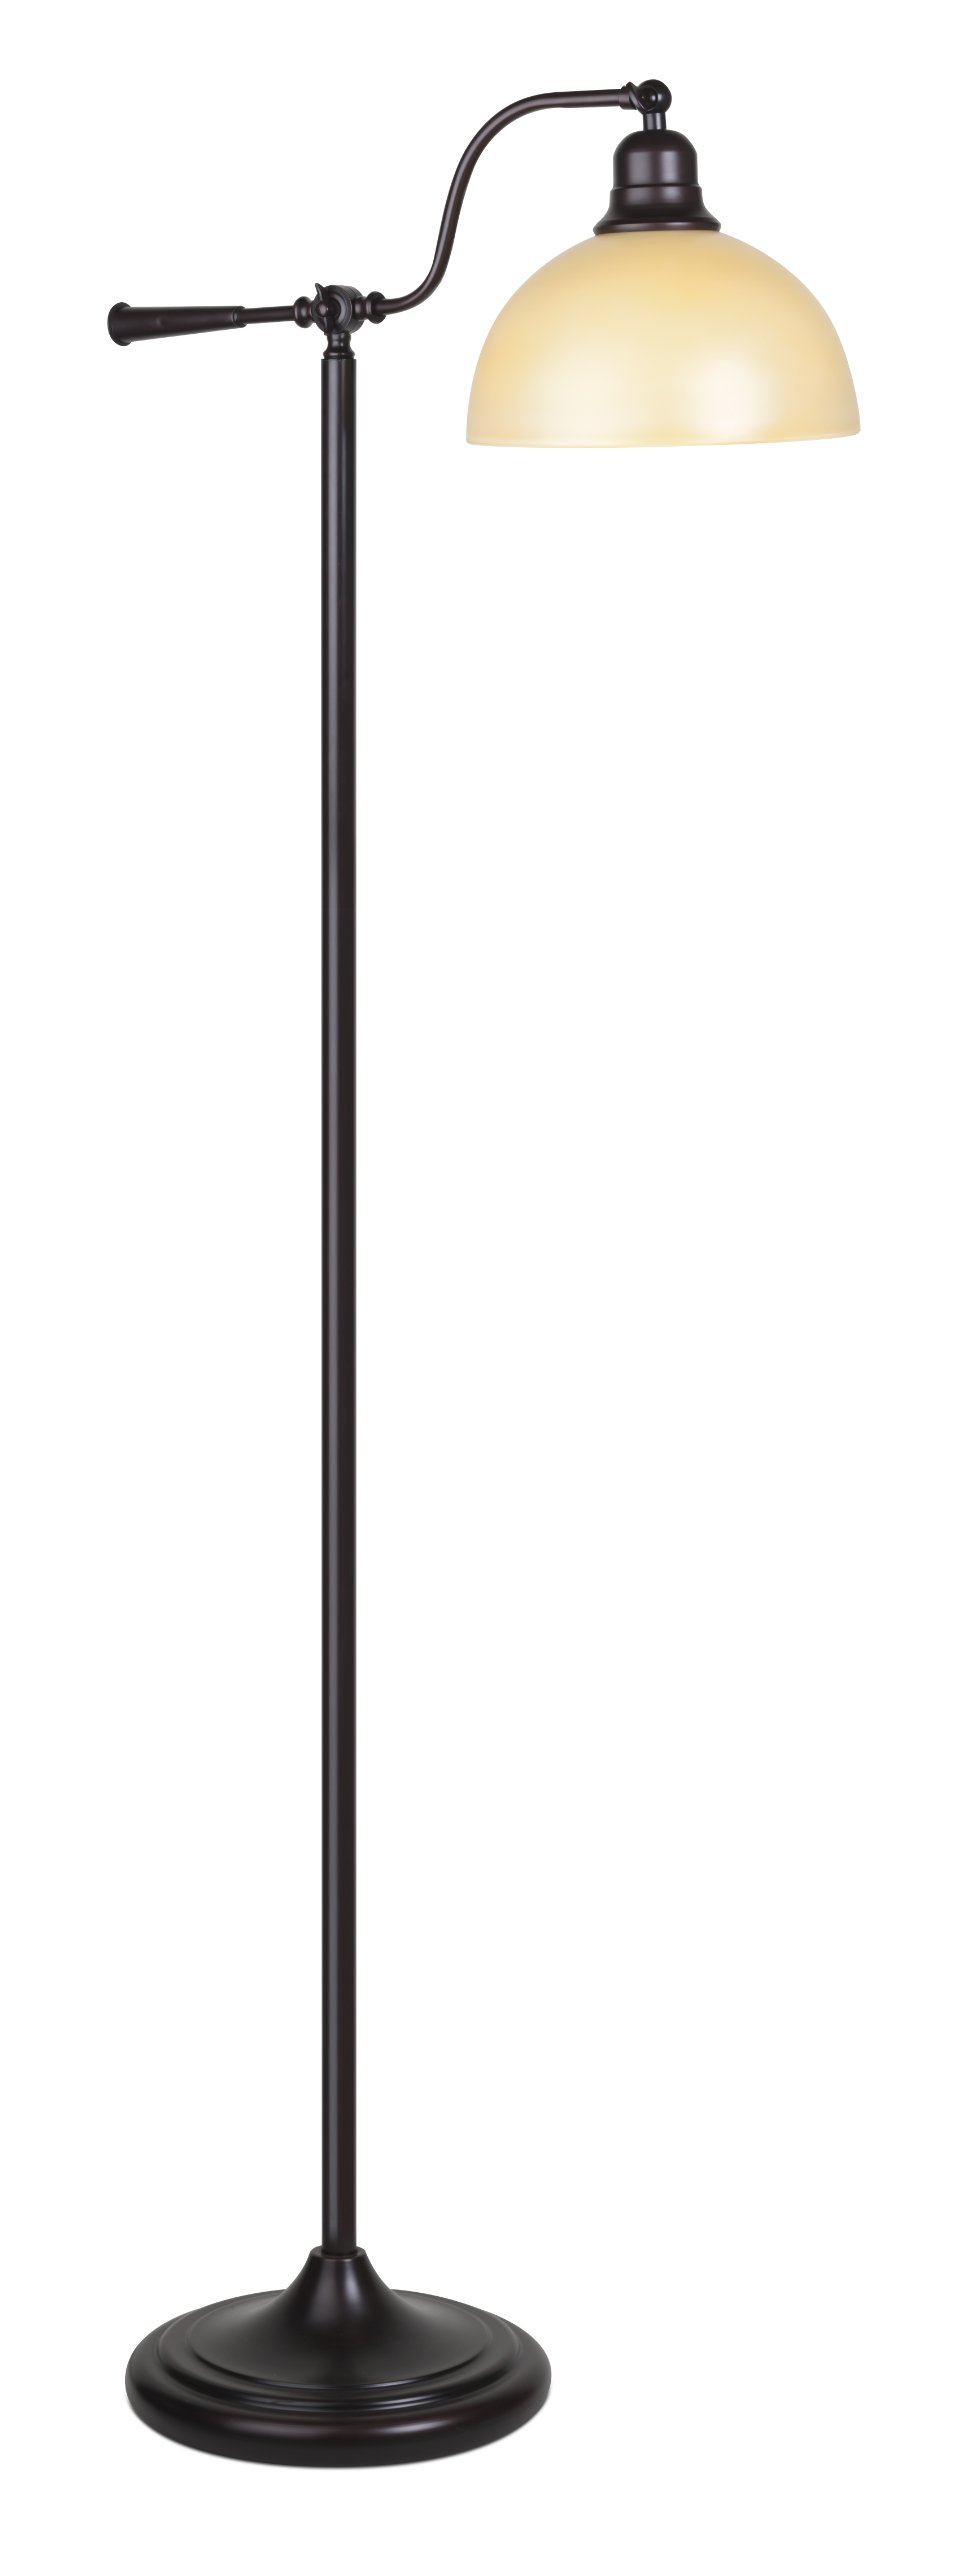 OttLite 25549BB5  25-watt HD Cambridge Floor Lamp by OttLite